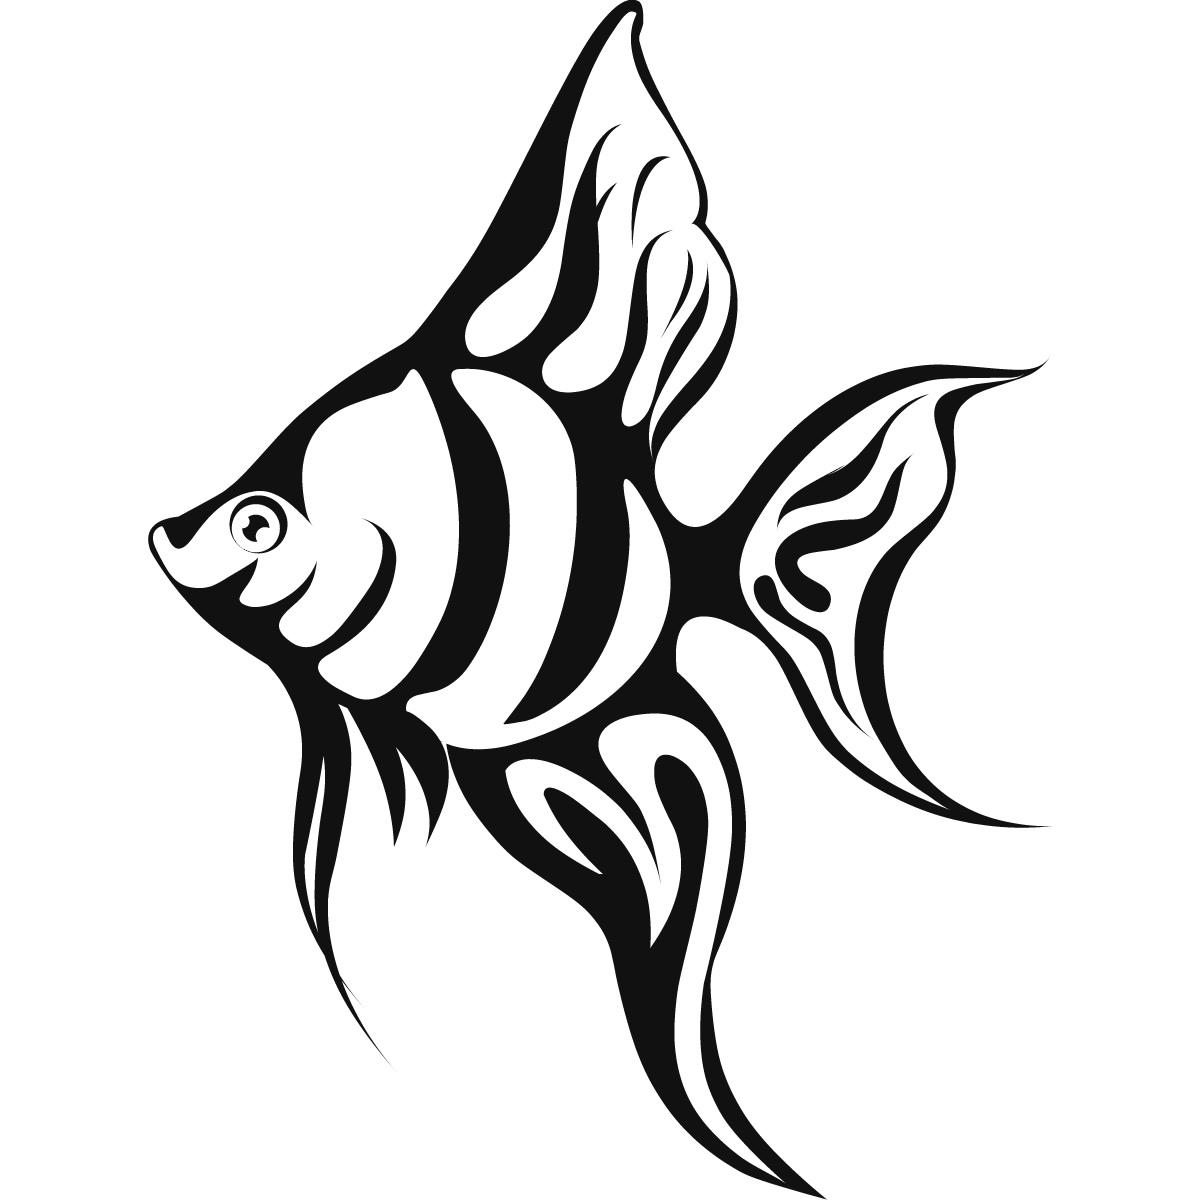 Tropical Fish Drawings - ClipArt Best